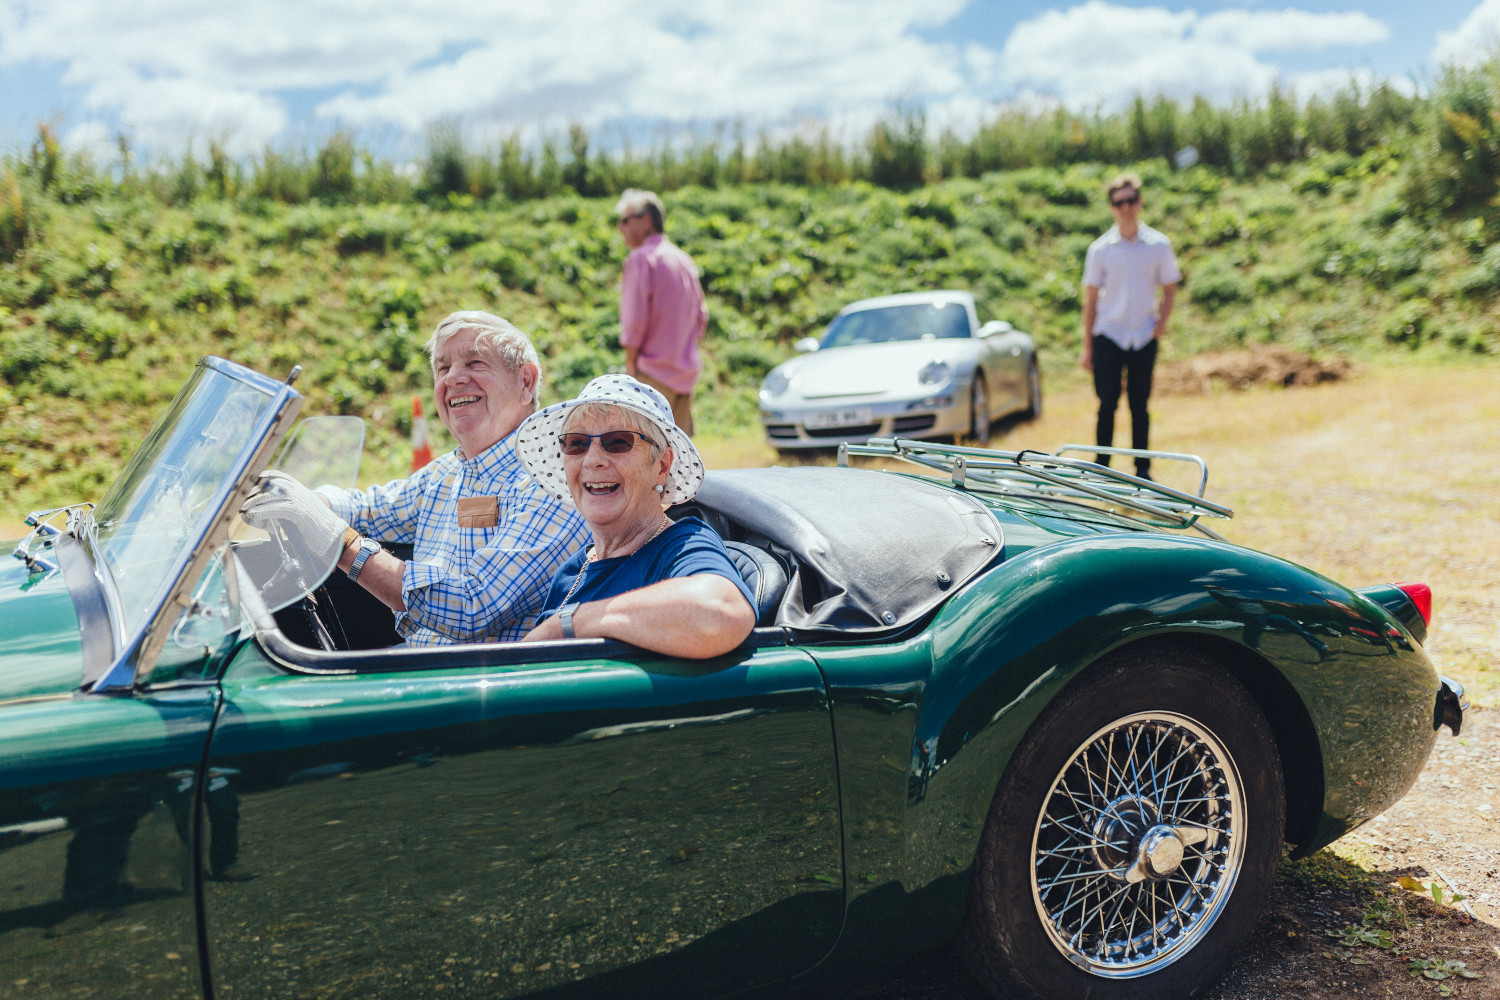 coffee classics event smiling motorists